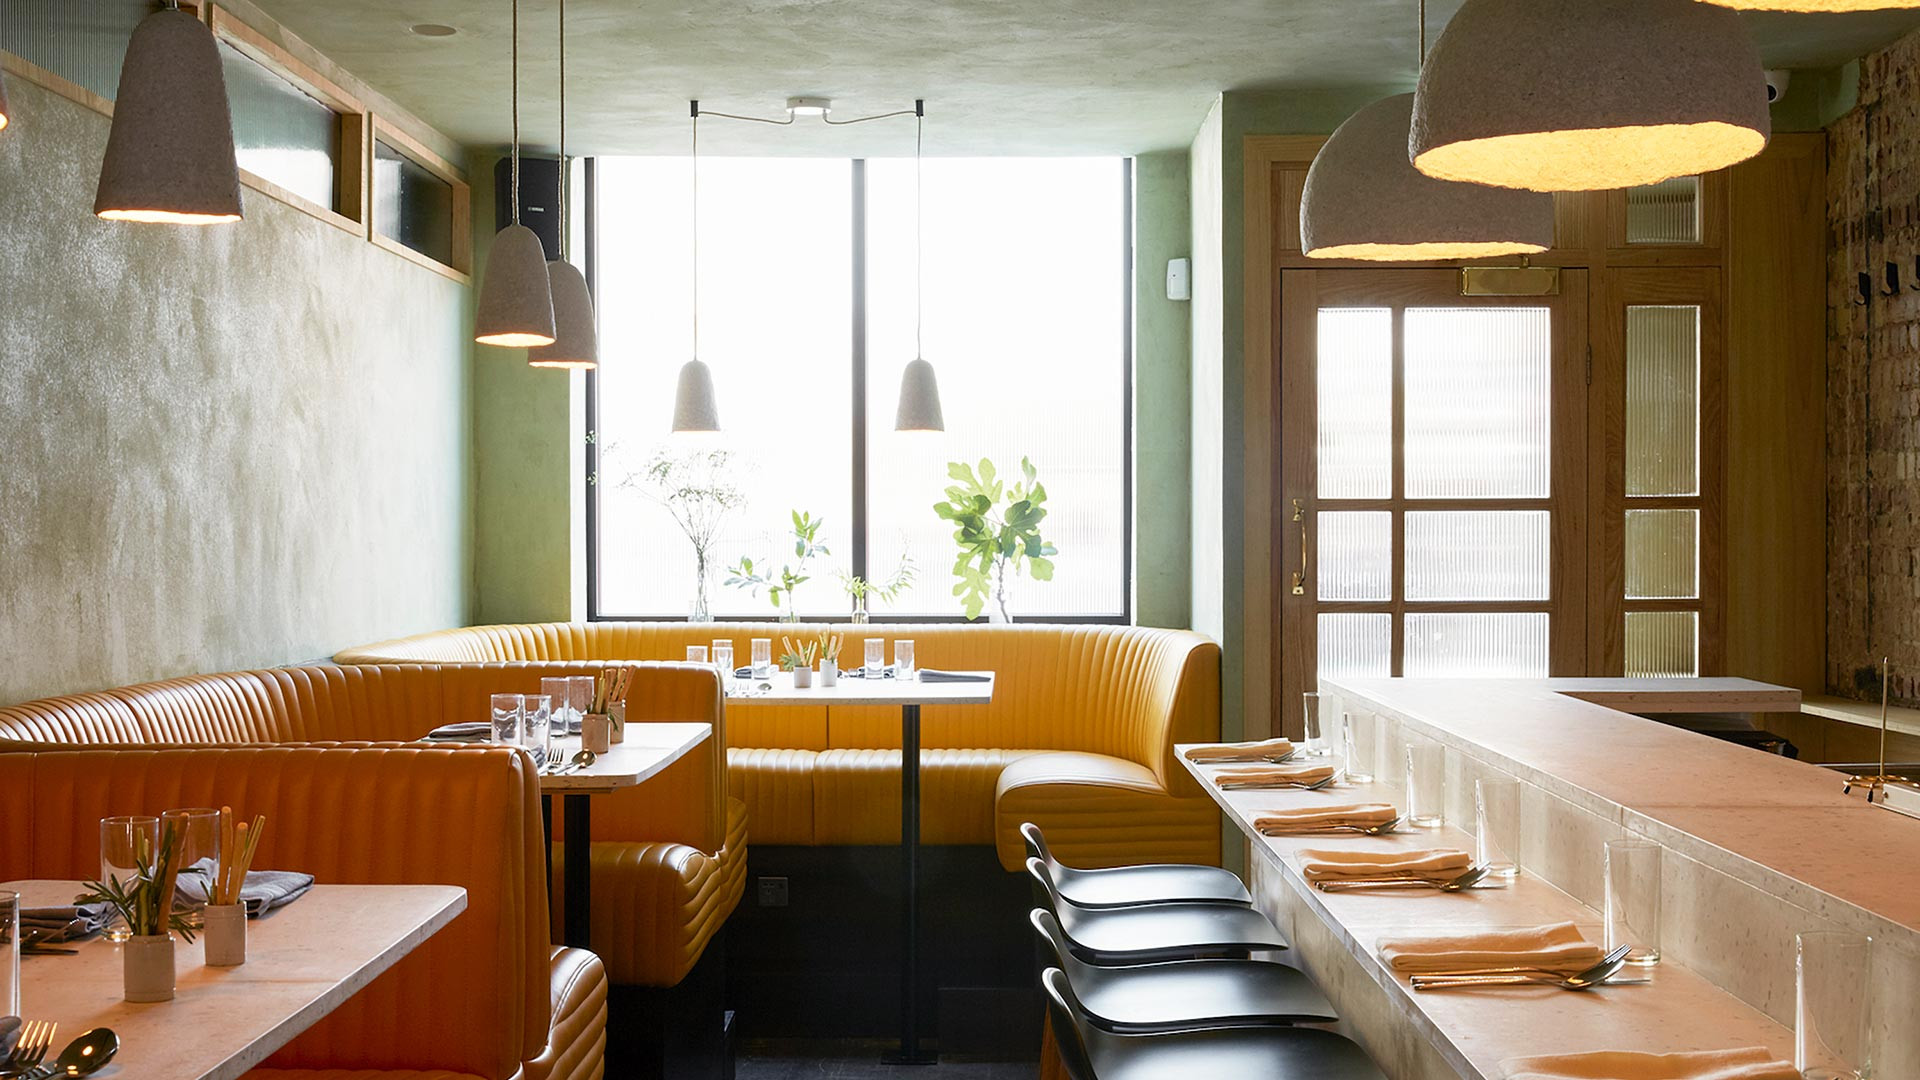 The interior design of Cub combines a vibrant colour scheme with a pared-down aesthetic and classic marble bar